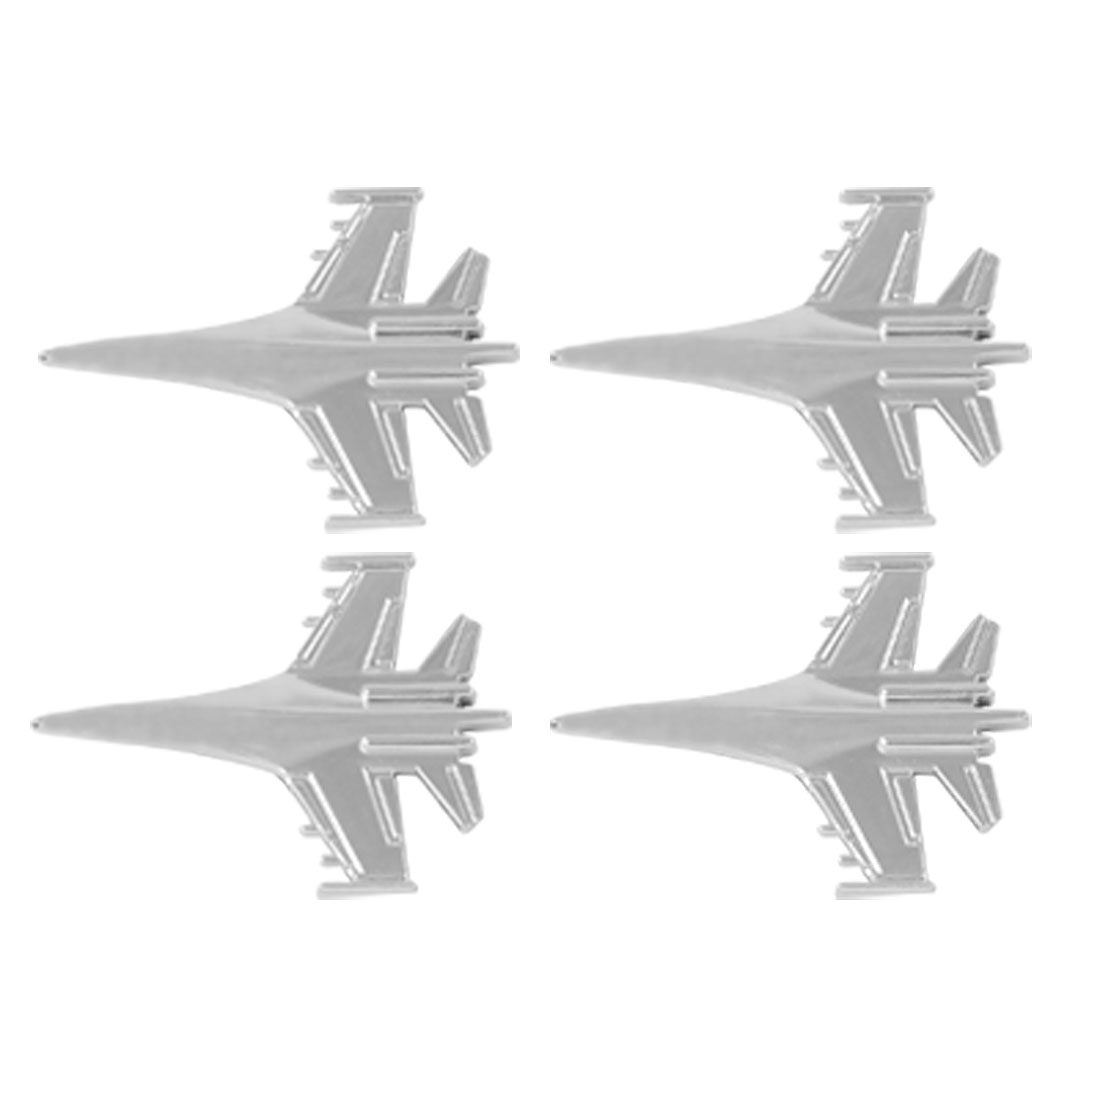 Vehcile Car 4 Pcs Plastic Silver Tone Plane Shaped 3D Stickers